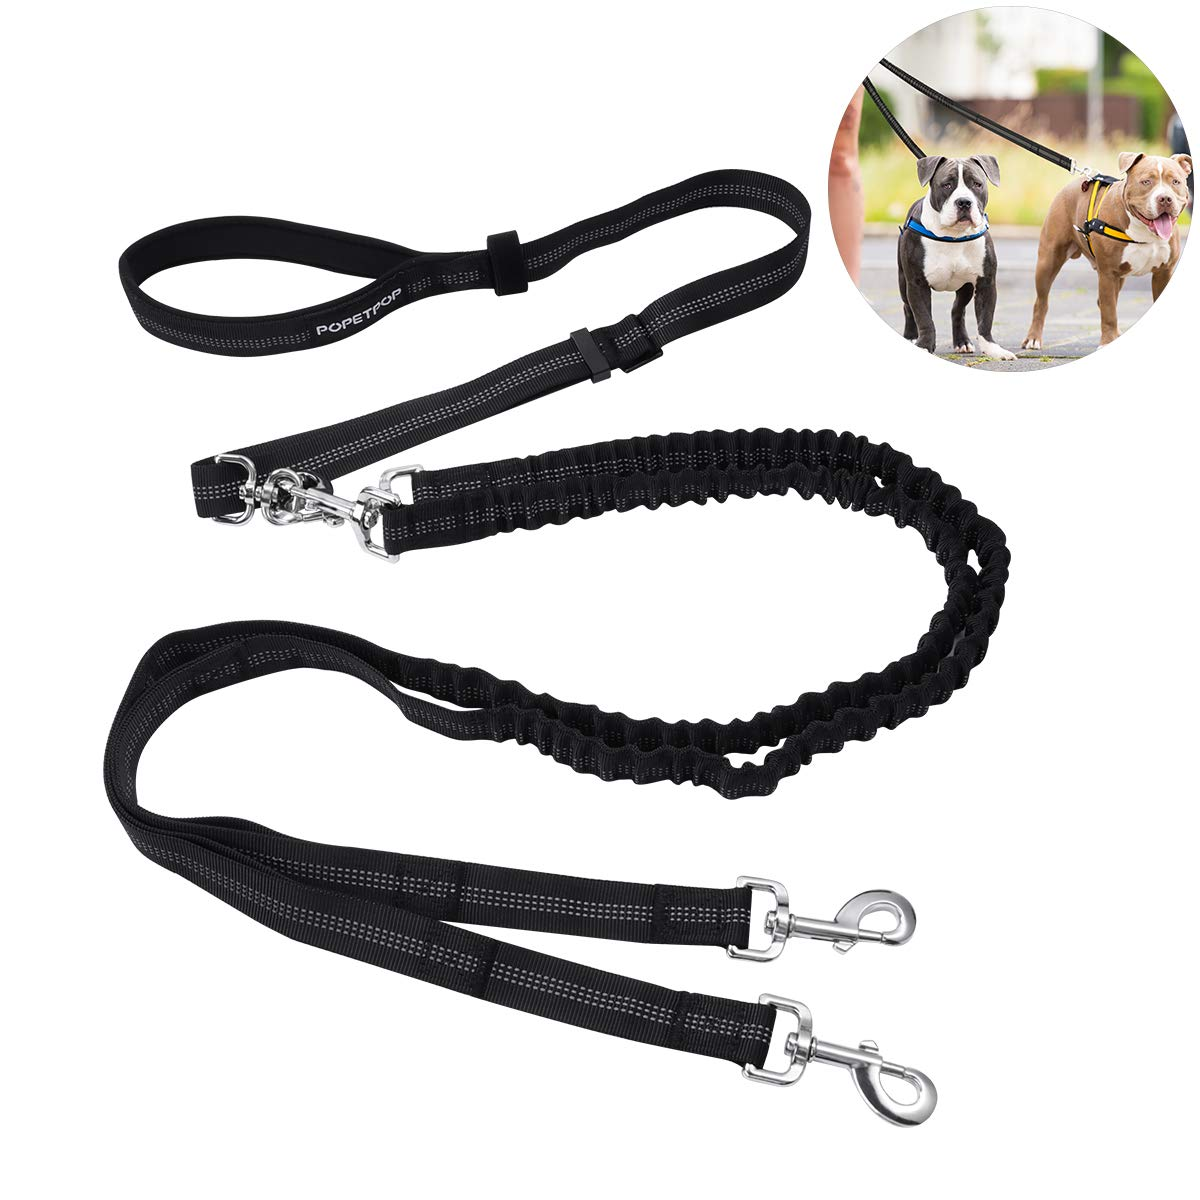 POPETPOP Double Dog Leash, 360° Swivel No Tangle Reflective Heavy Duty Dual Dog Leash with Soft Handle and Shock Absorbing Bungee for Medium/Large One or Two Dogs